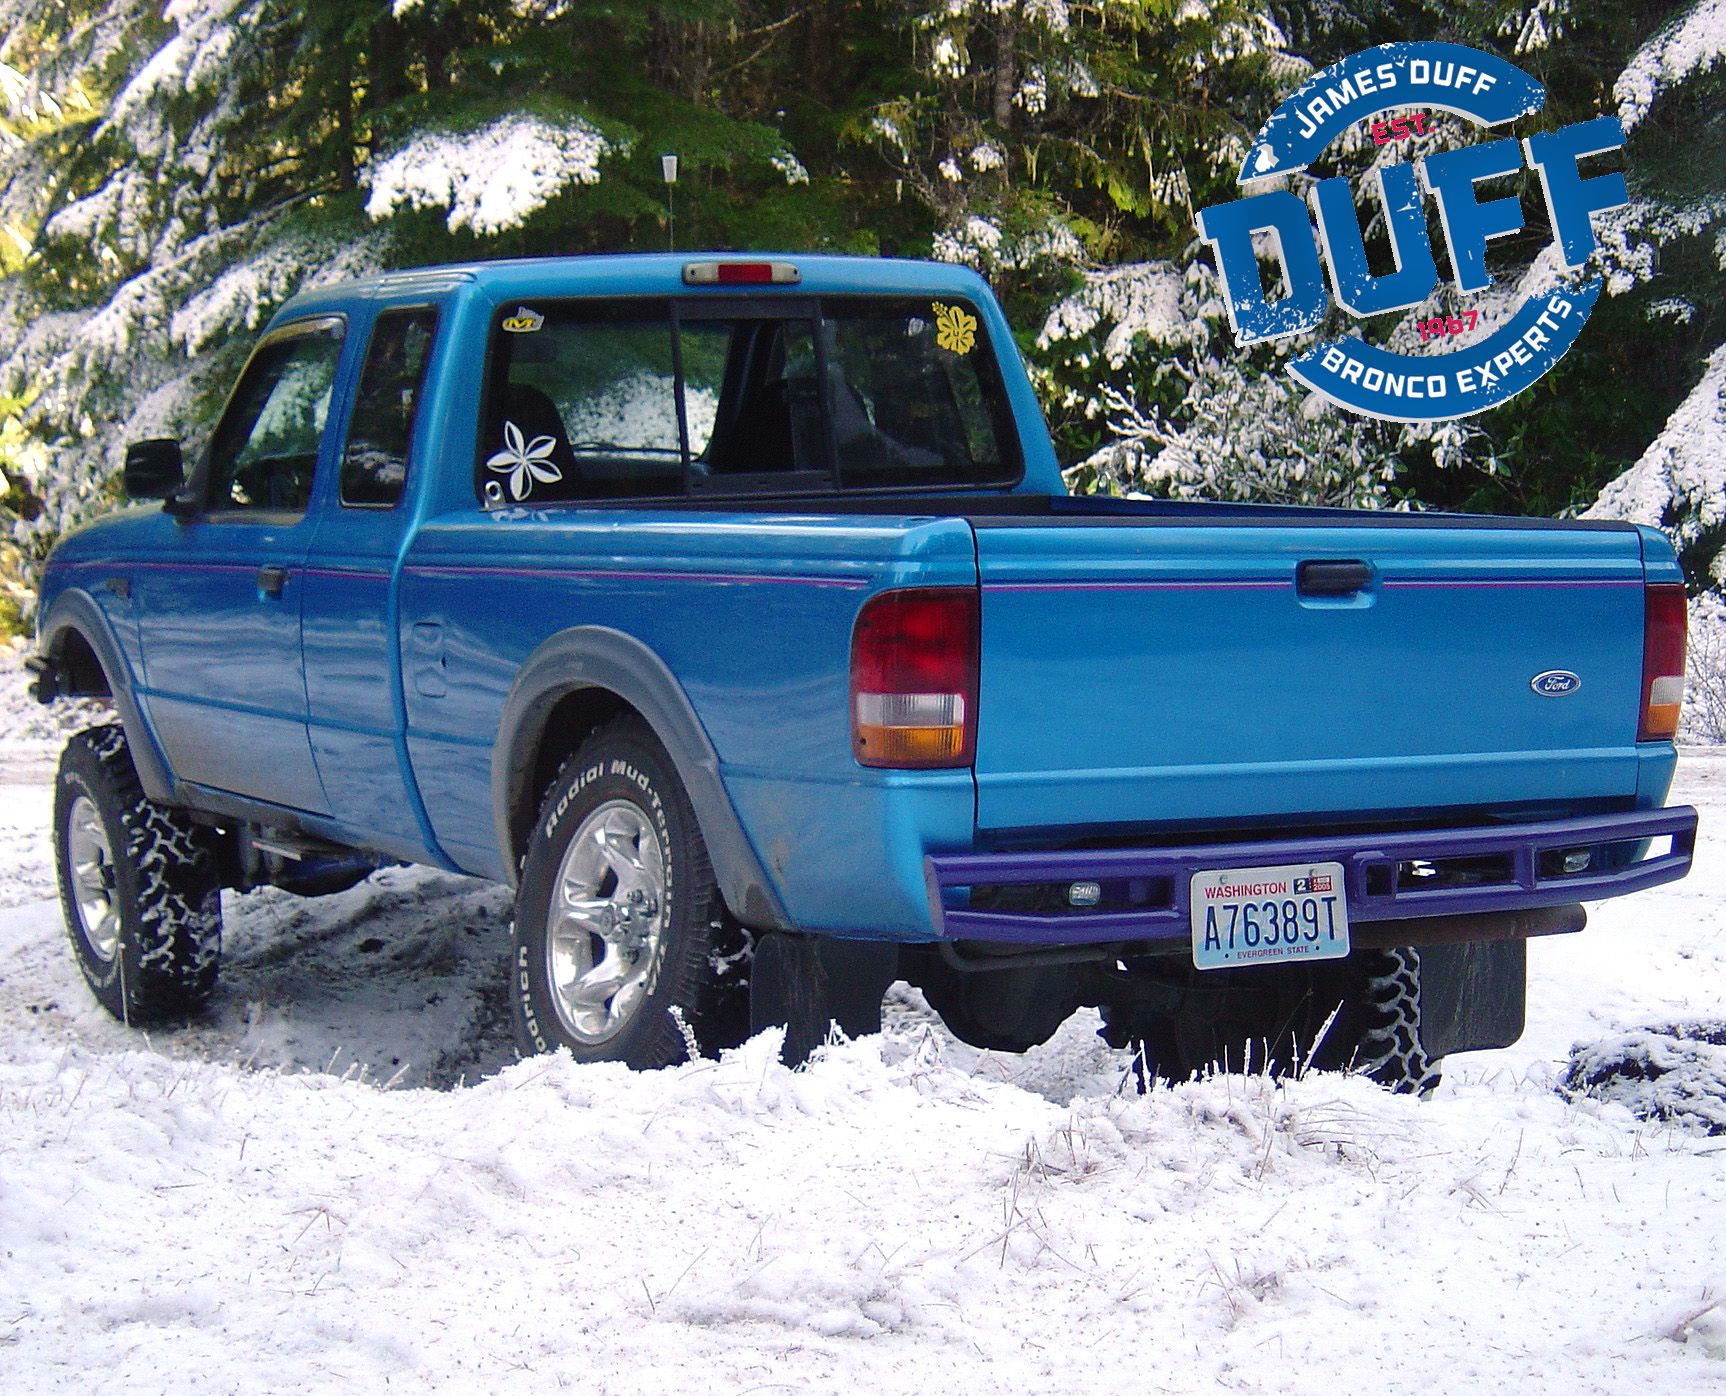 Suzy duff s 94 ford ranger with duff stage 3 suspension lift kodiak sidewinder steps and